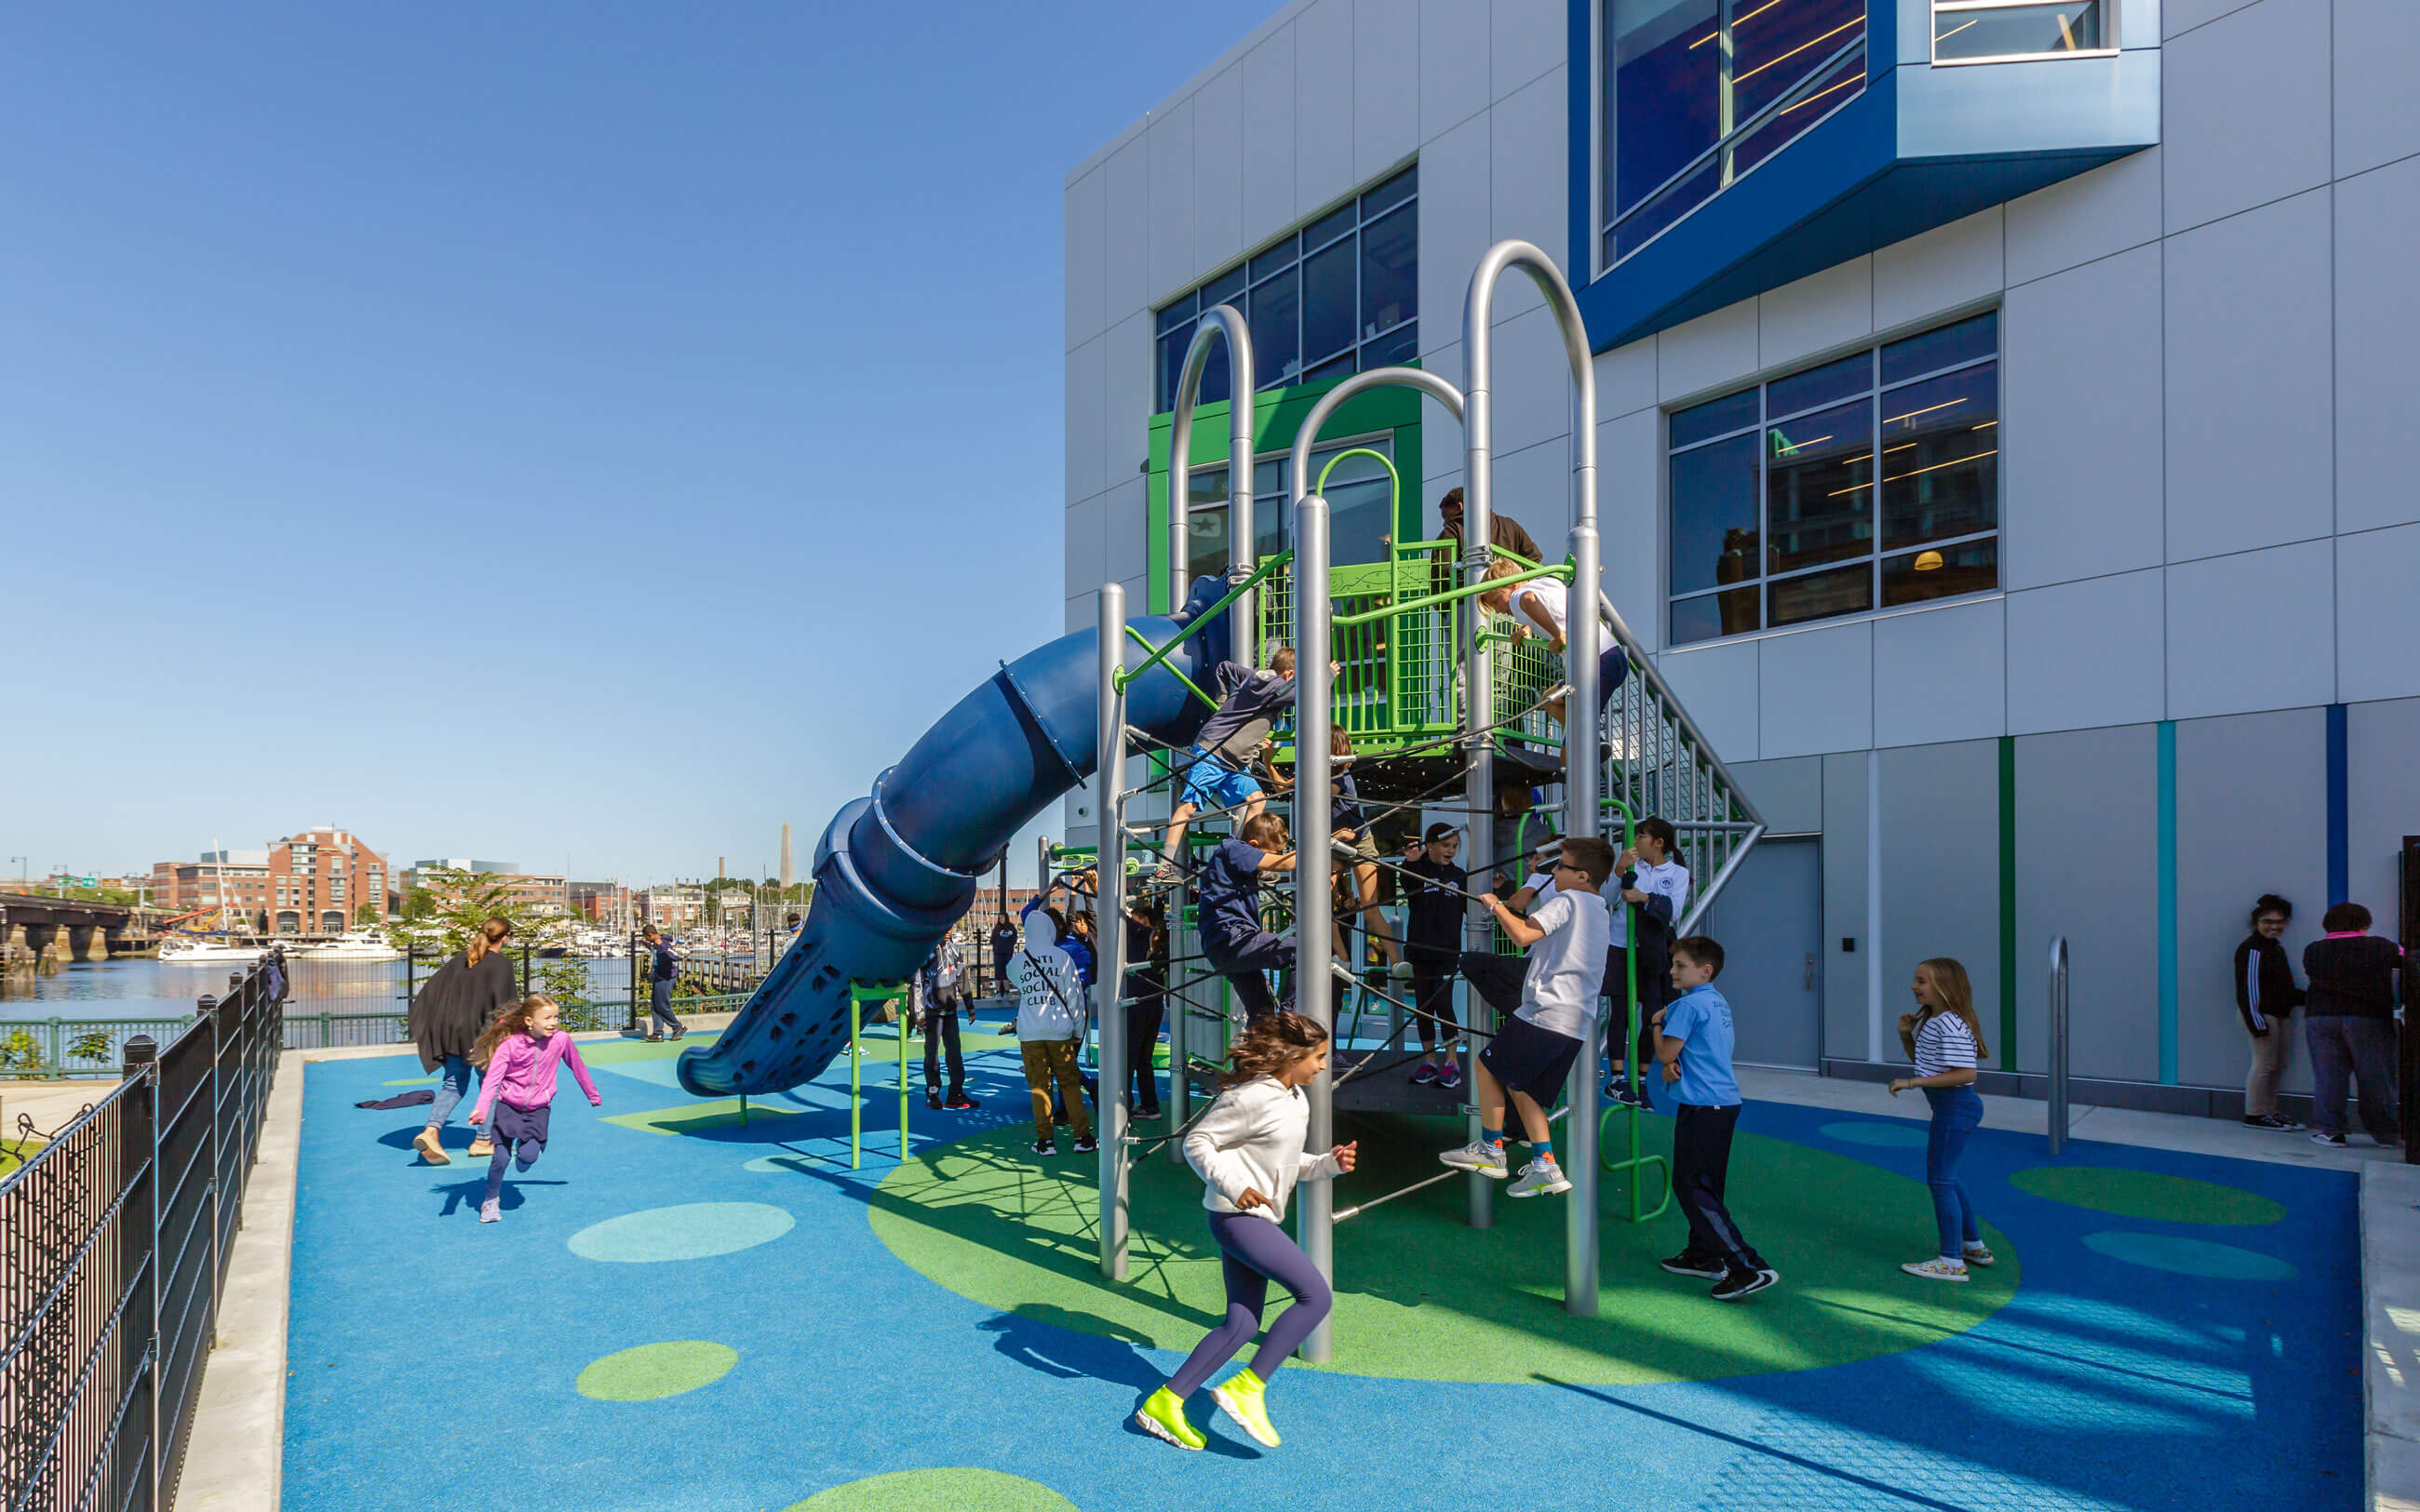 Young students running and climbing on green and blue play structure.